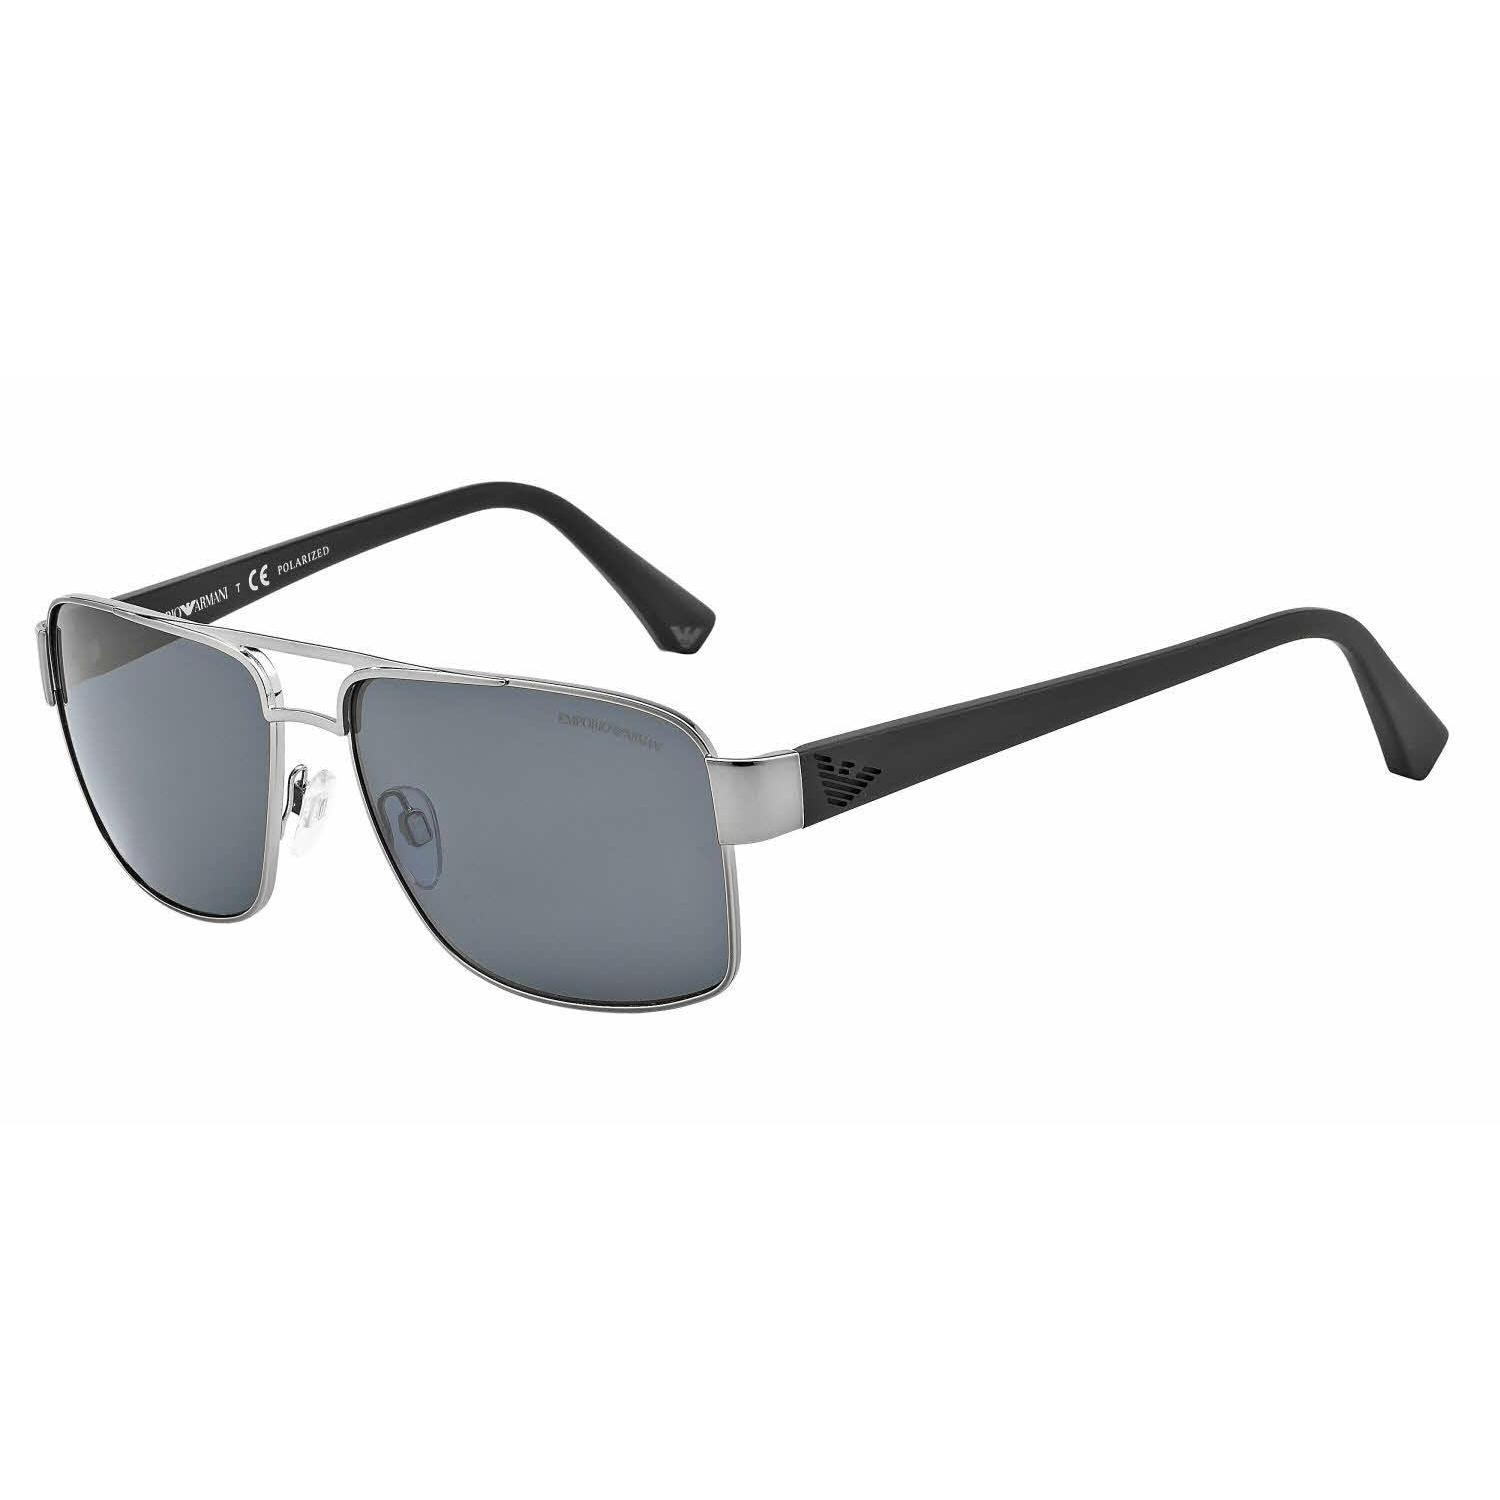 4410bf2af50 Shop Emporio Armani Mens EA2002 301081 Gunmetal Metal Rectangle Sunglasses  - Free Shipping Today - Overstock - 13469236